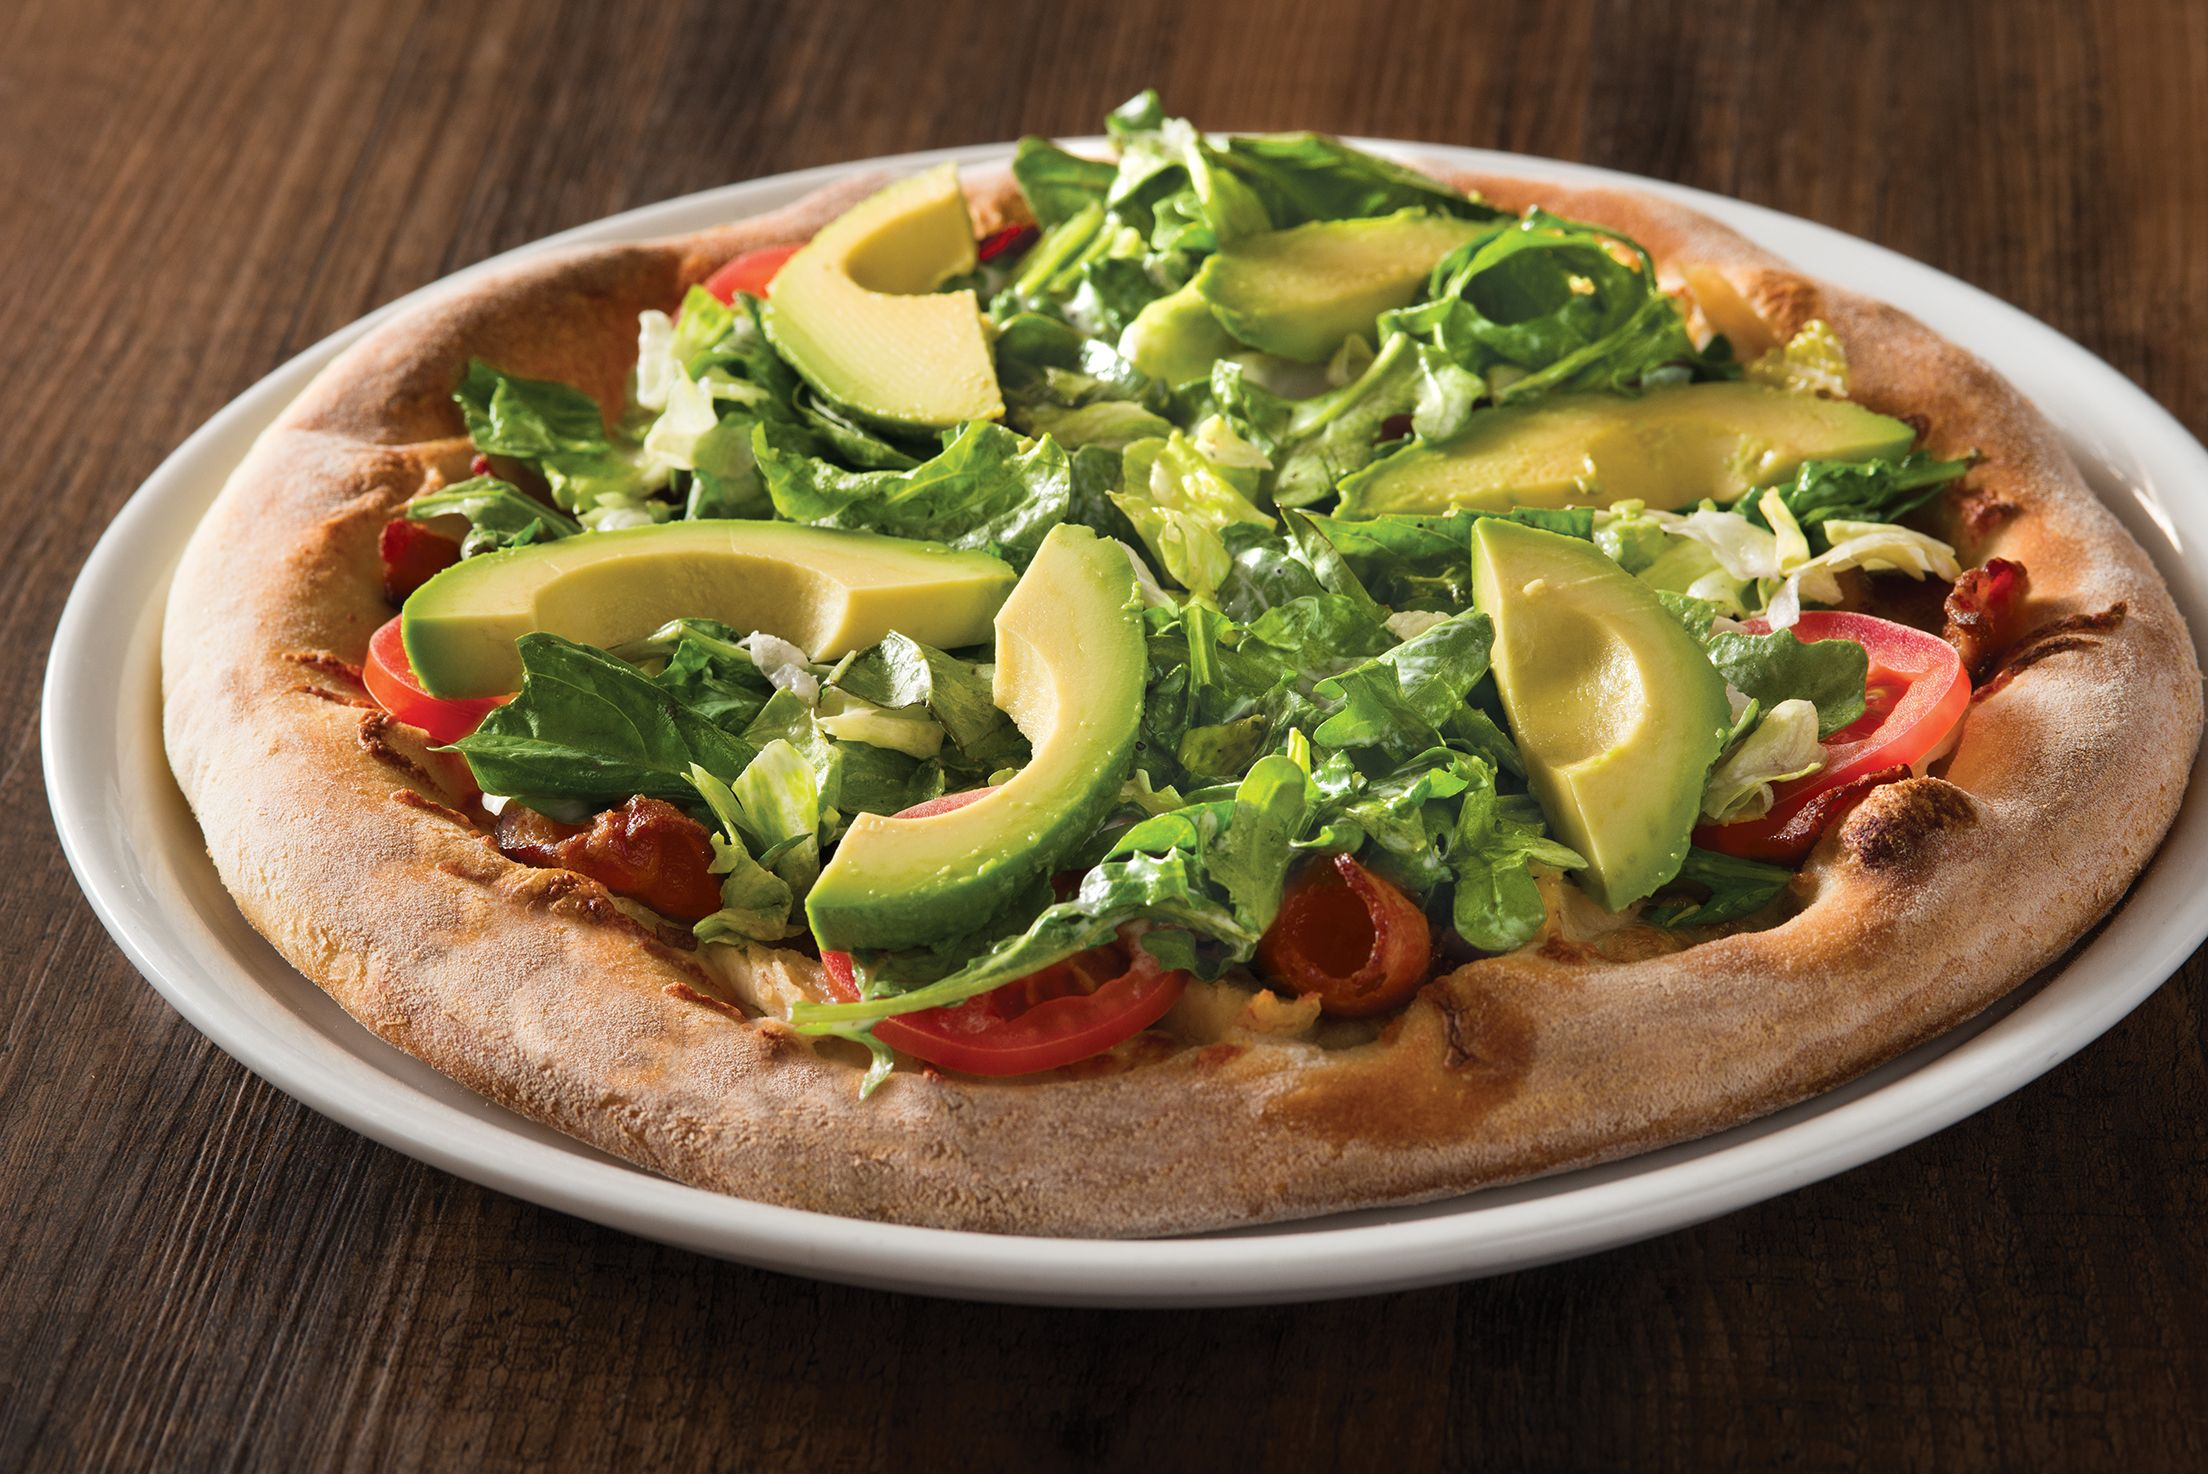 Cpk 39 S California Club Pizza On A New Hand Tossed Dough Cpk Hand Tossed Pizzas